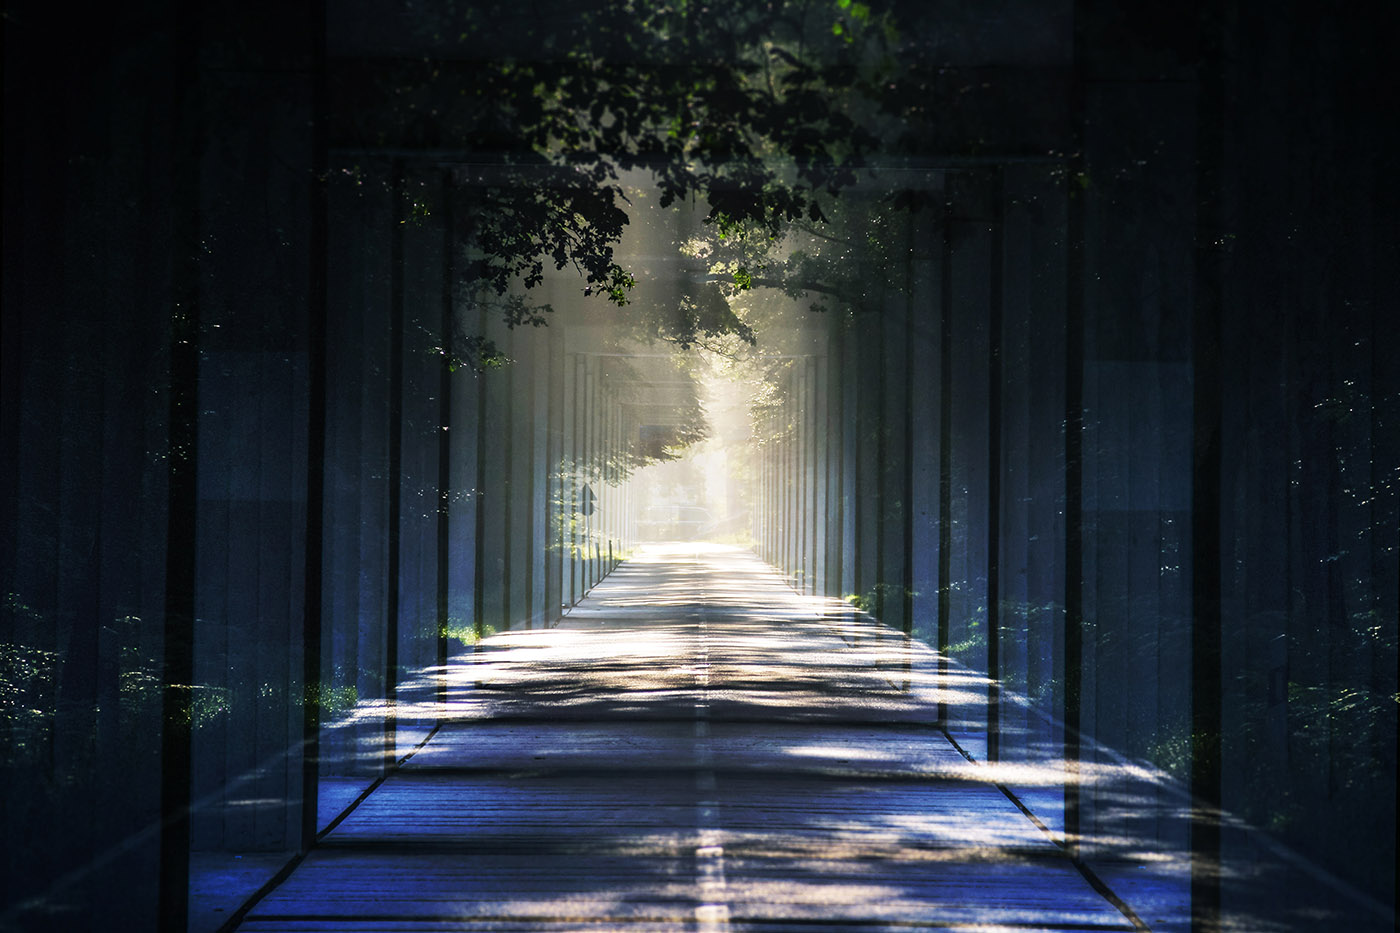 Light at the End Perspective 01 - Royalty-Free Stock Imagery